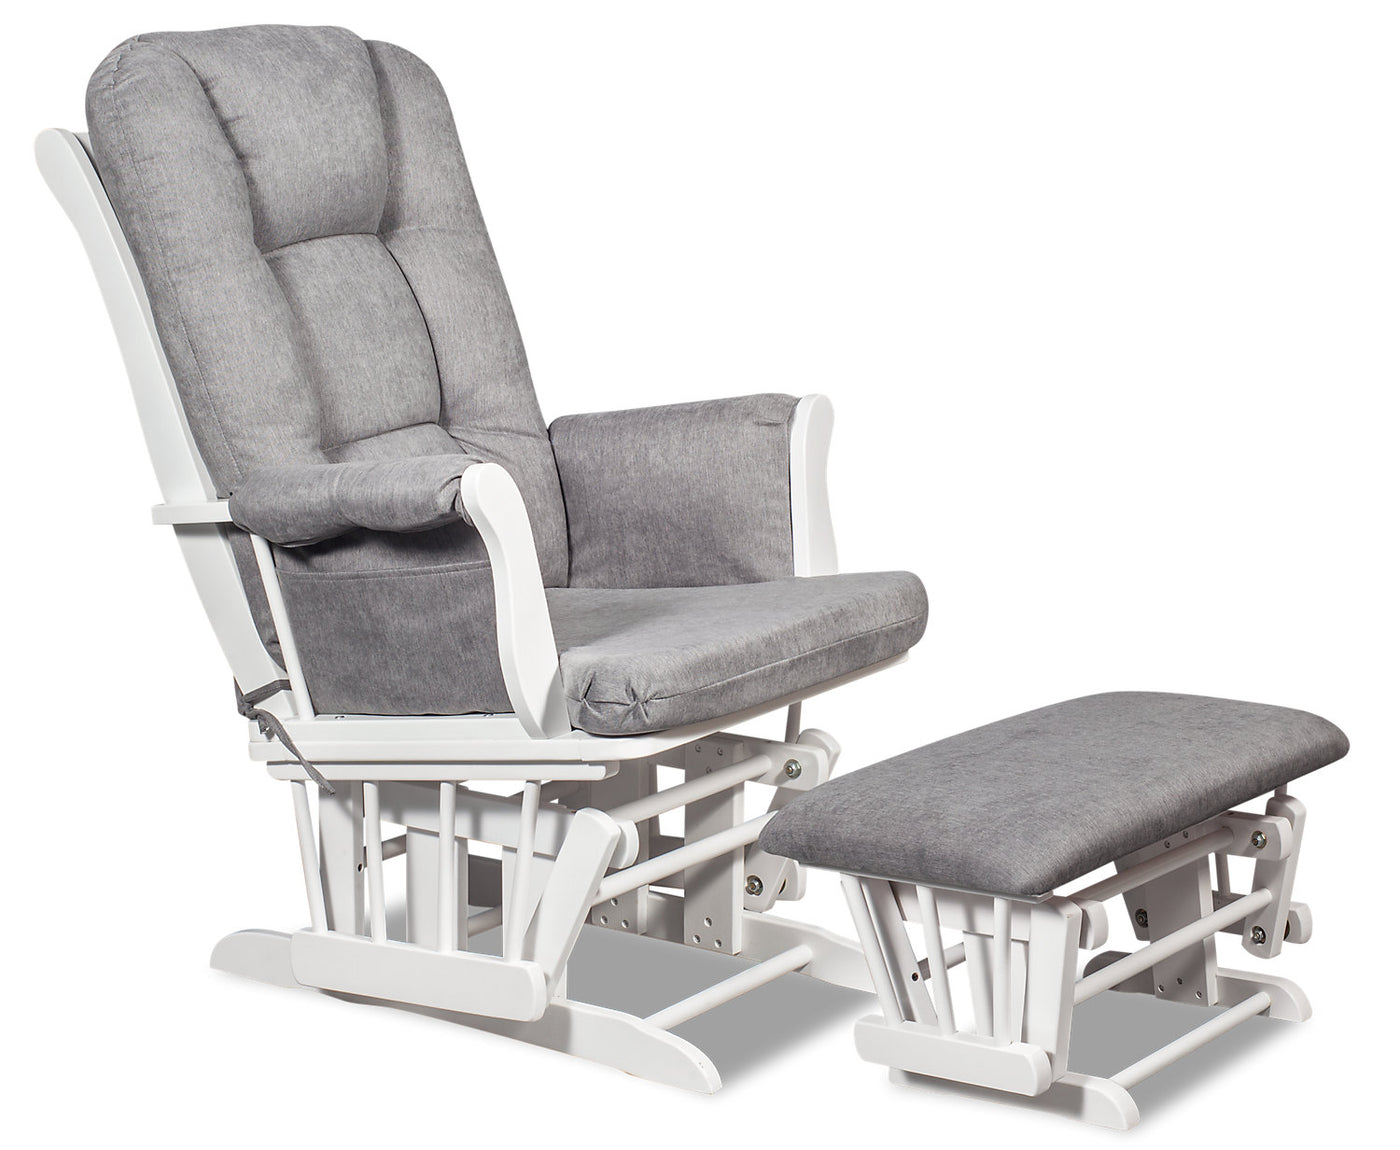 Anita Microsuede Gliding Chair With Ottoman White And Grey